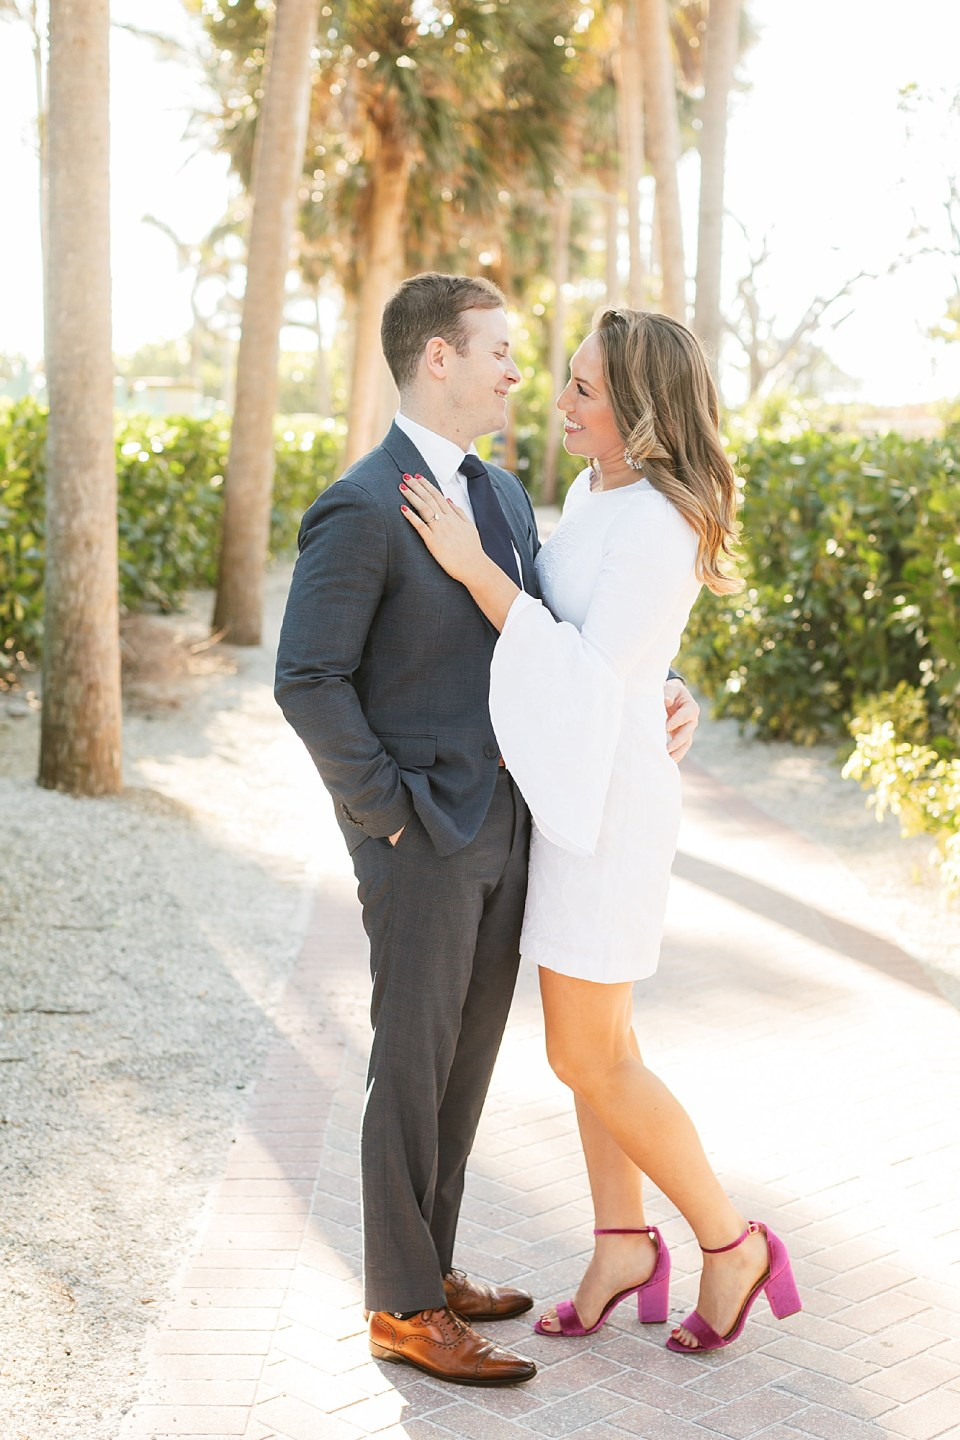 Vibrant and Romantic Lifestyle Engagement Photography by Magdalena Studios 0001